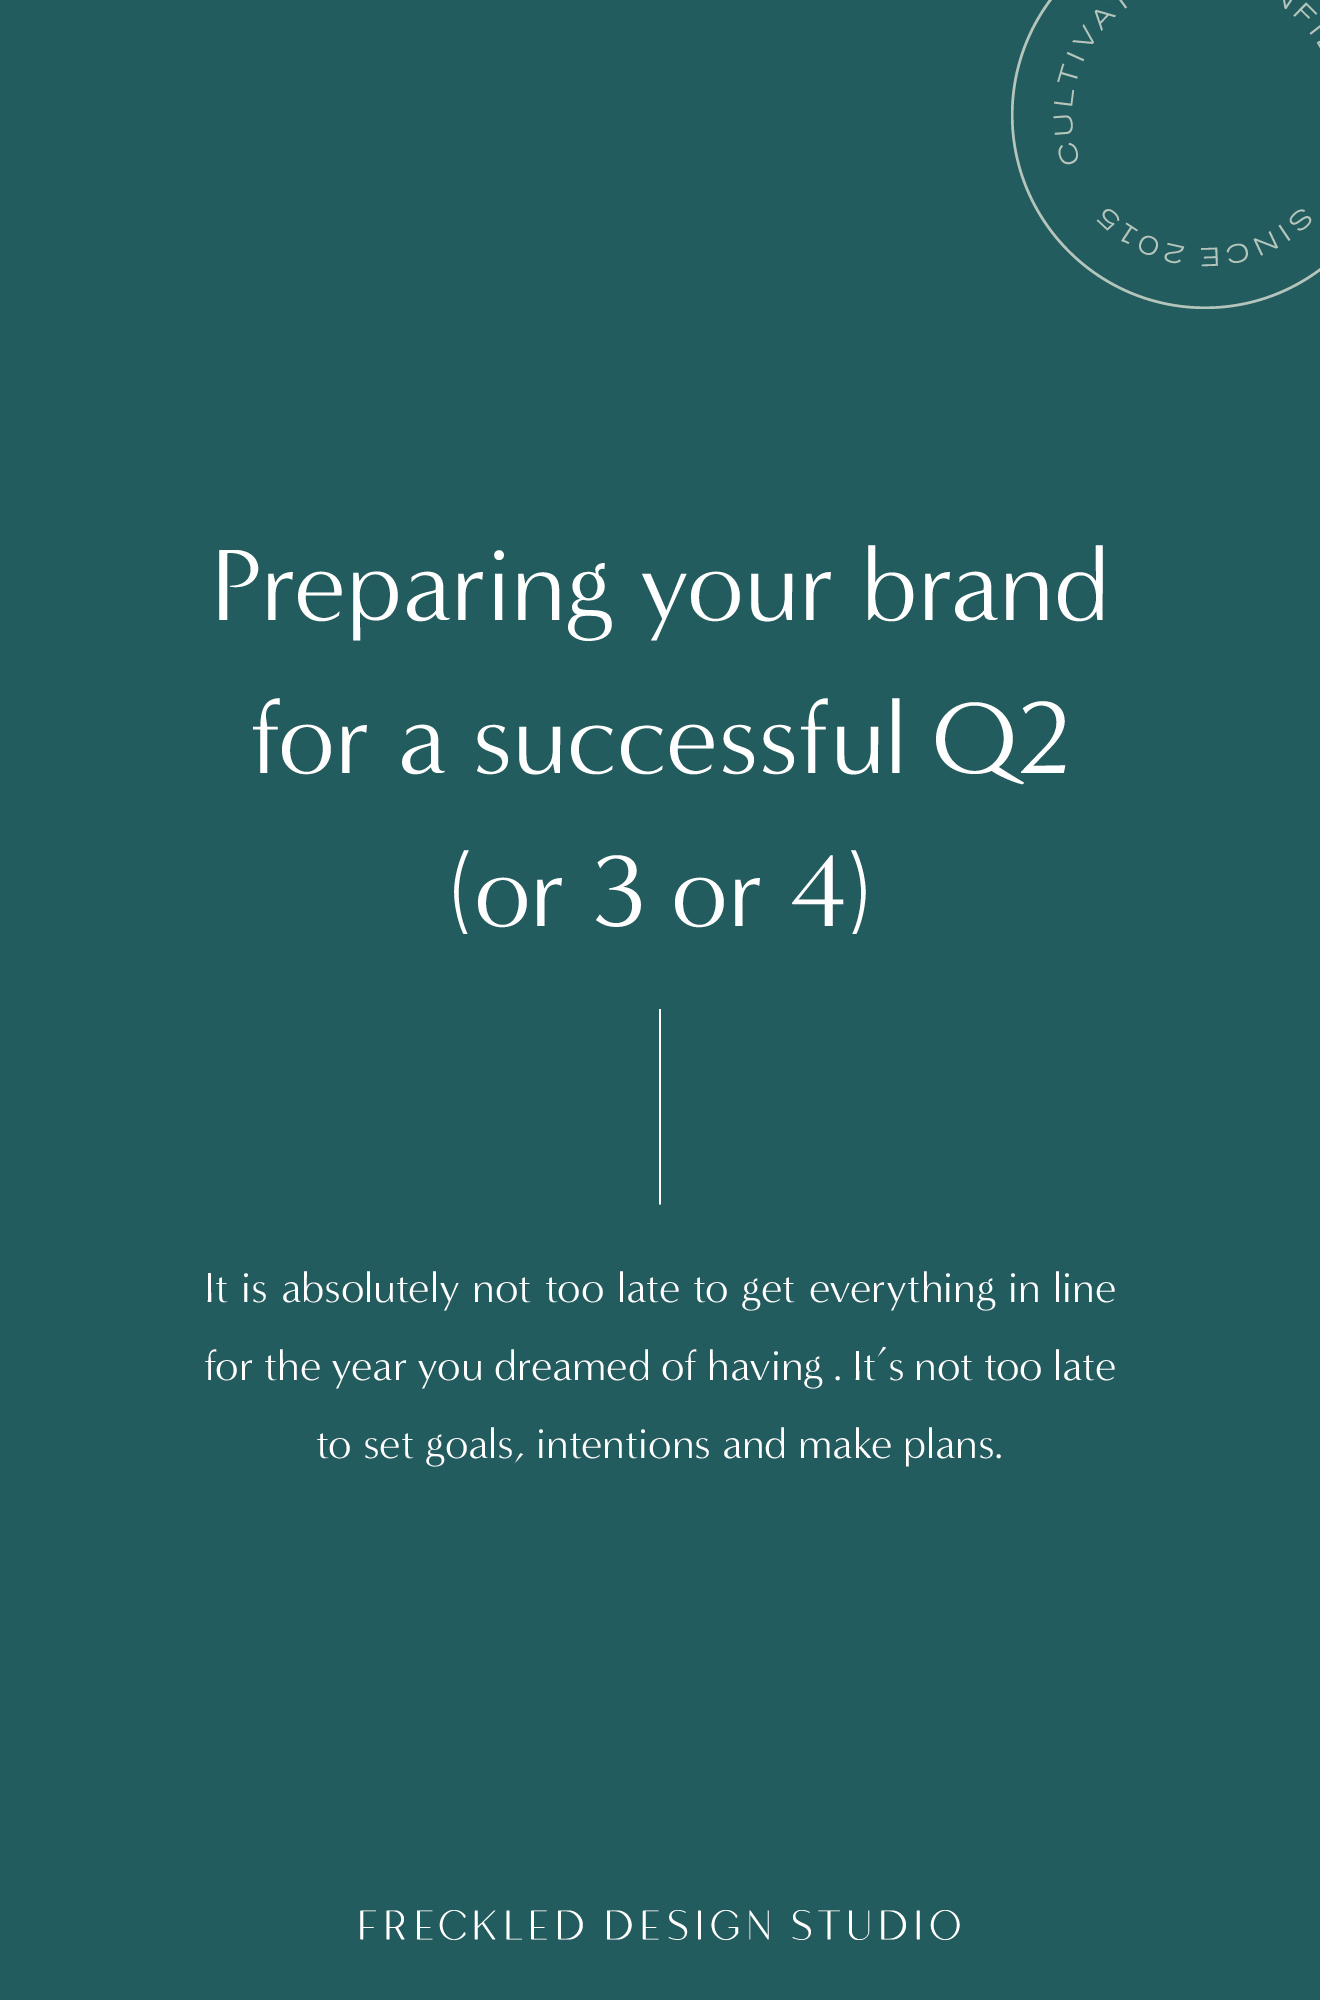 Prepare your brand for a successful Q2 (or 3 or 4!) because it's never too late to create the year your dreamed of having in your business!